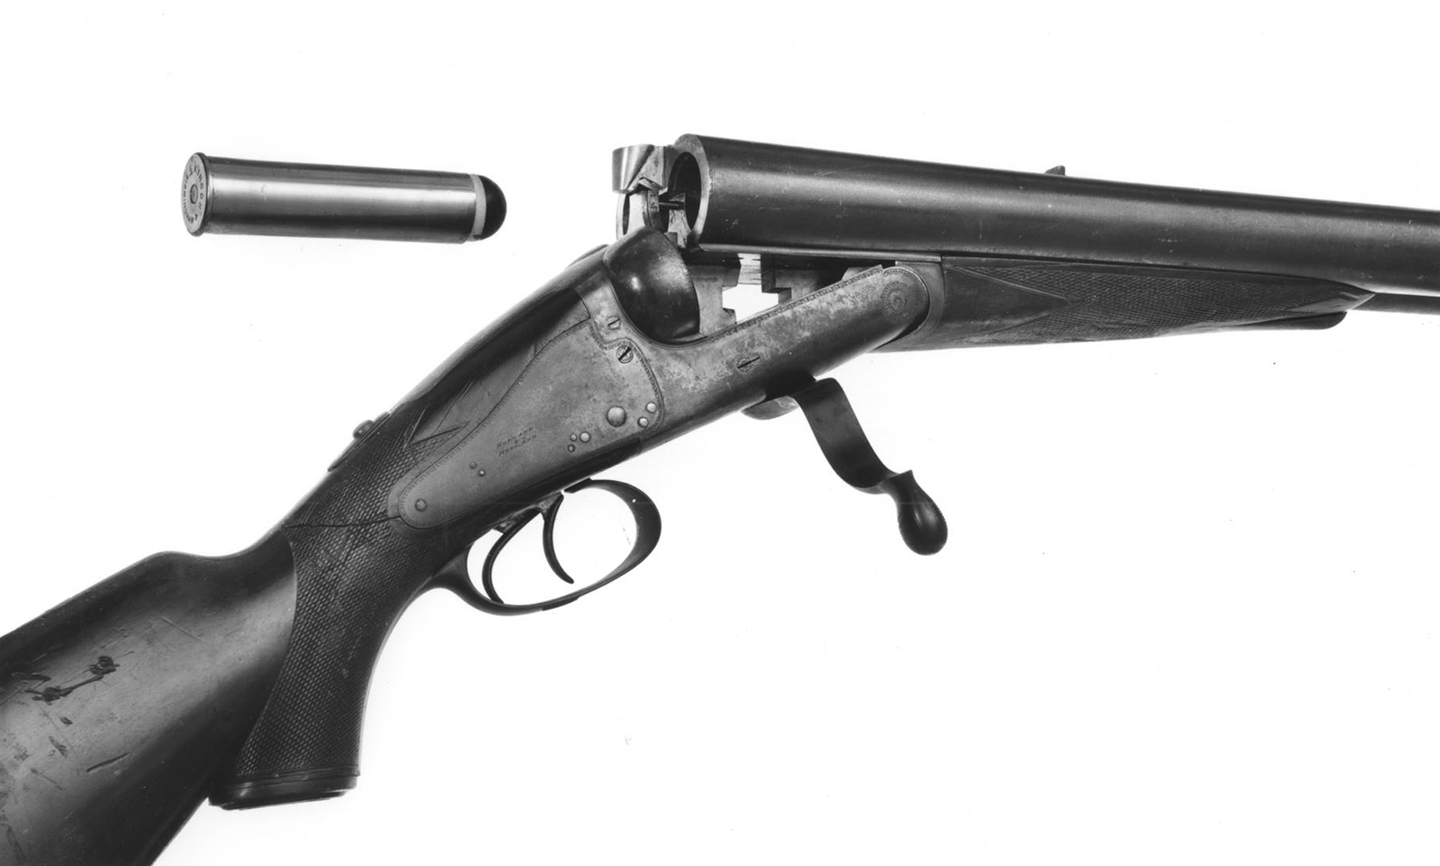 Open rifle showing both barrels and cartridge